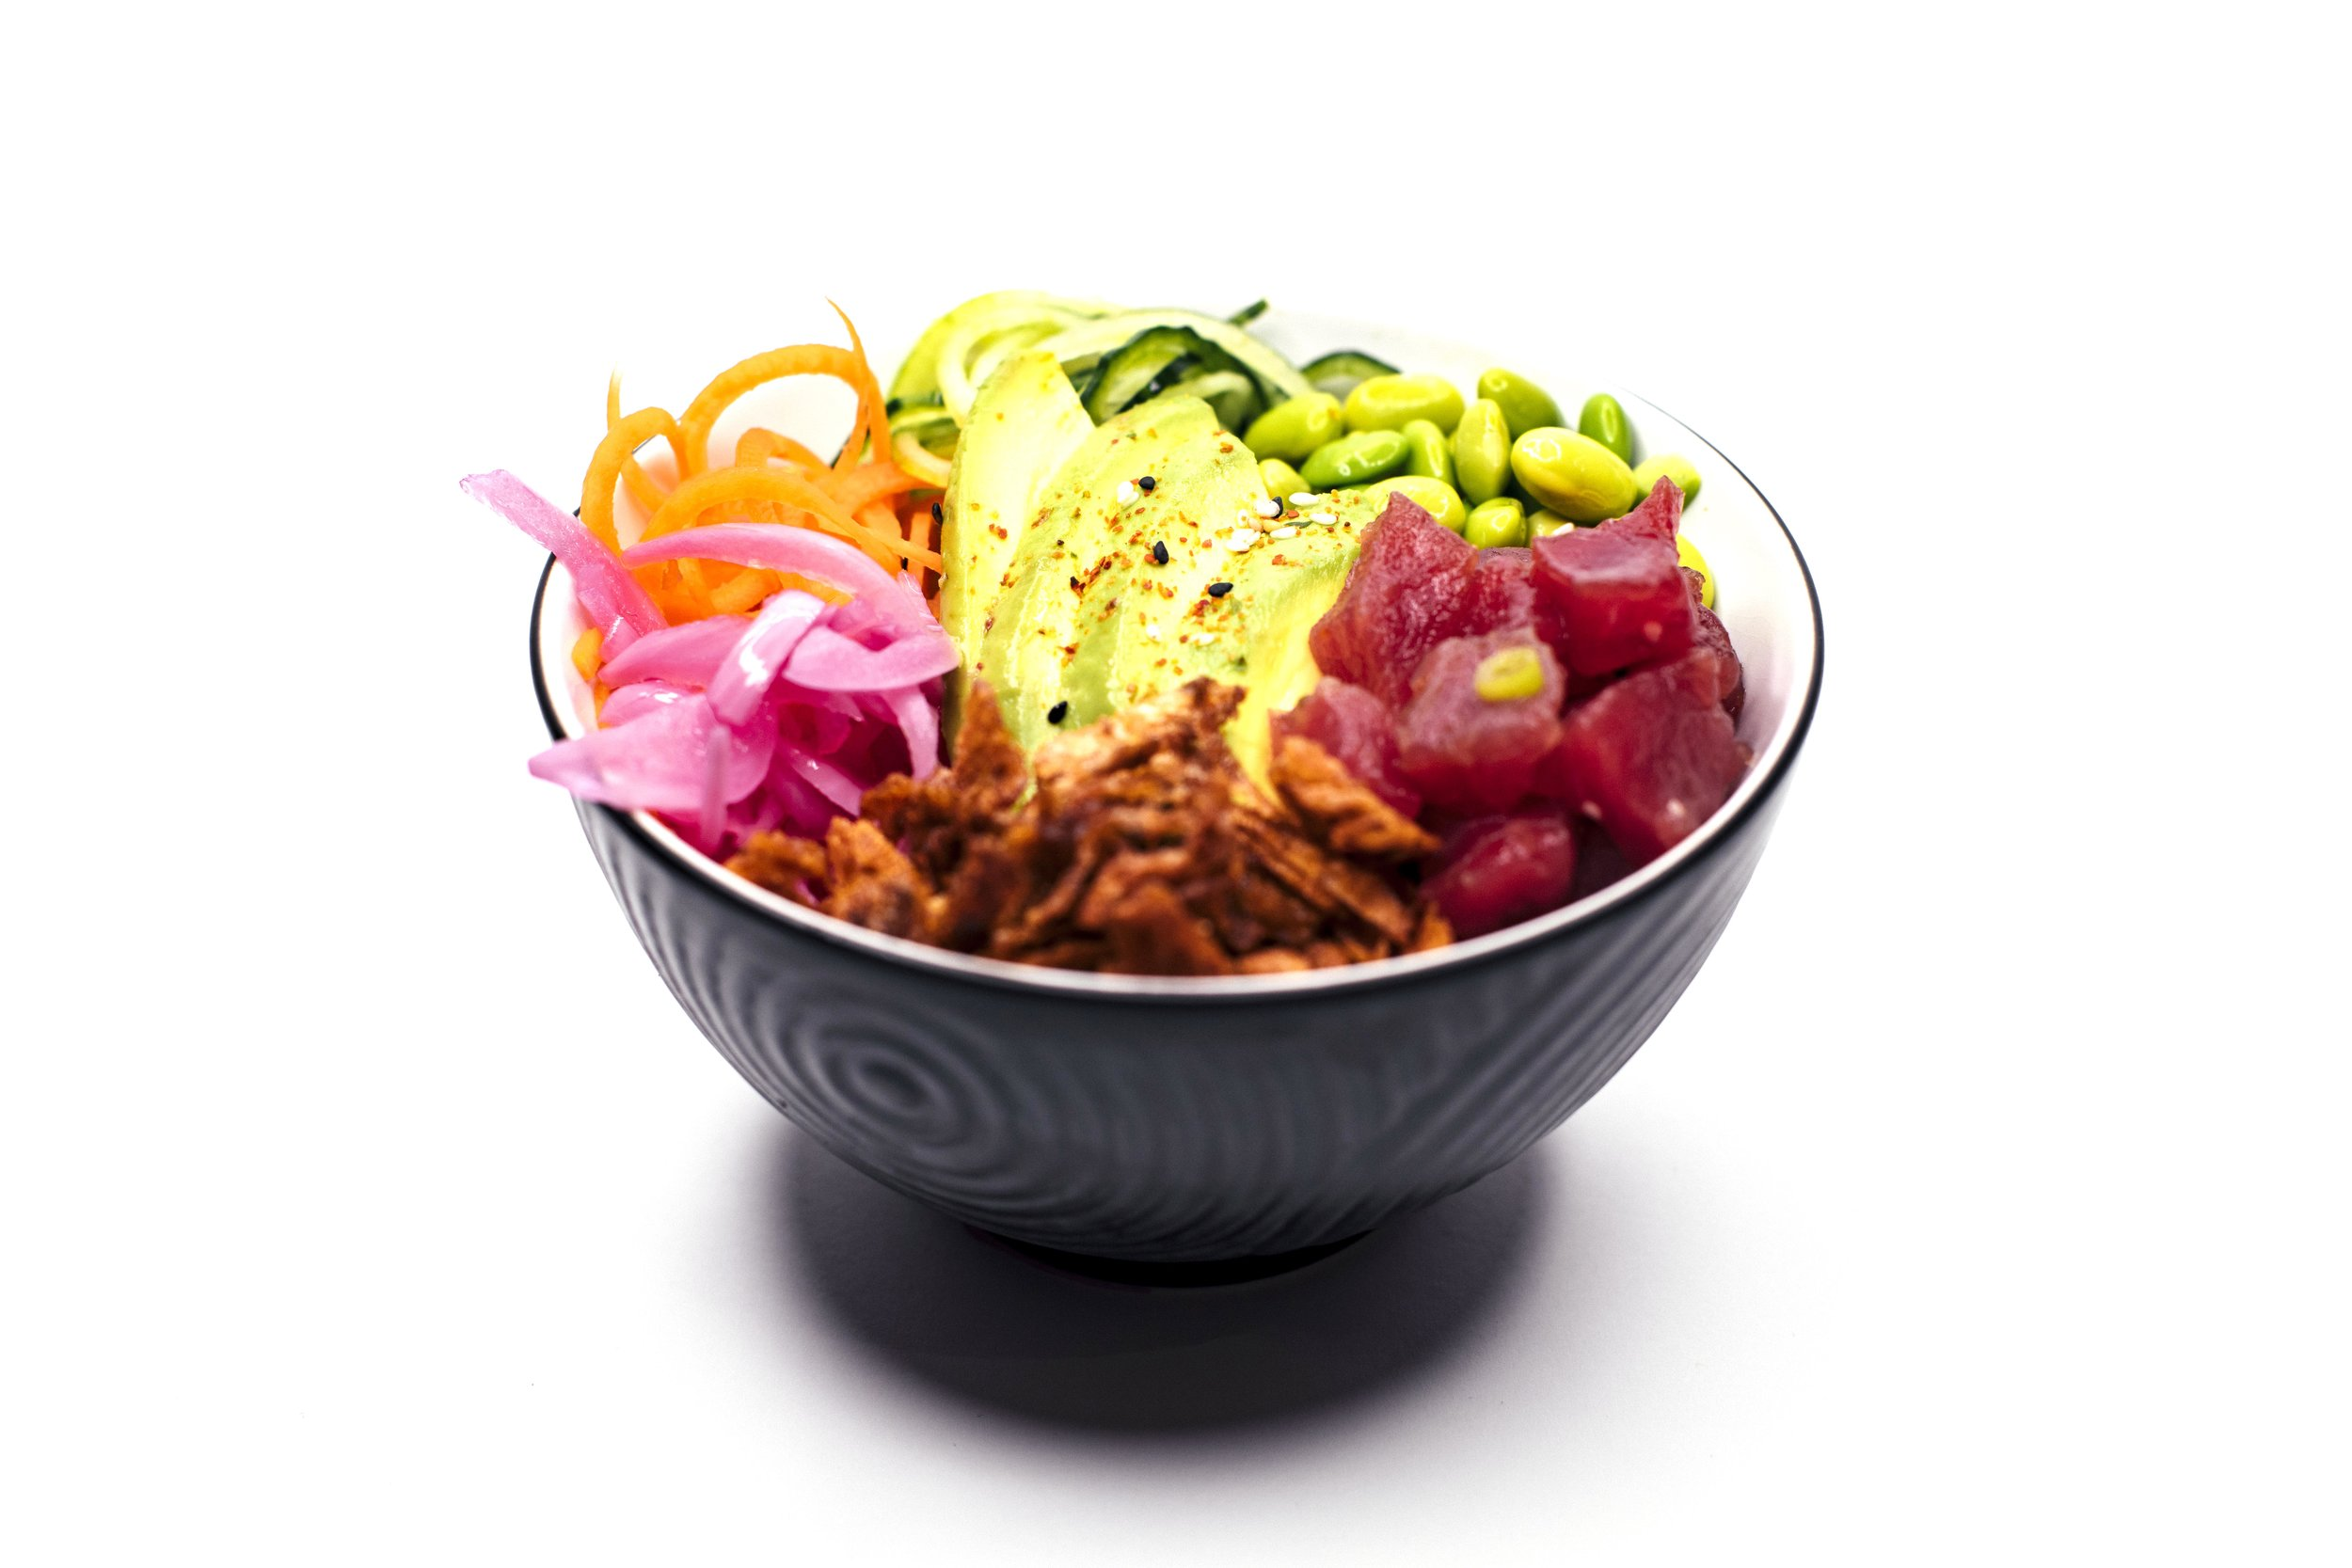 TUNA CRUNCH BOWL - Tuna Sashimi, Rice, Edamame Beans, Avocado, Cucumber, Carrot, Crispy Potato Flakes, Pickled Red Onion, Creamy Wasabi Sauce